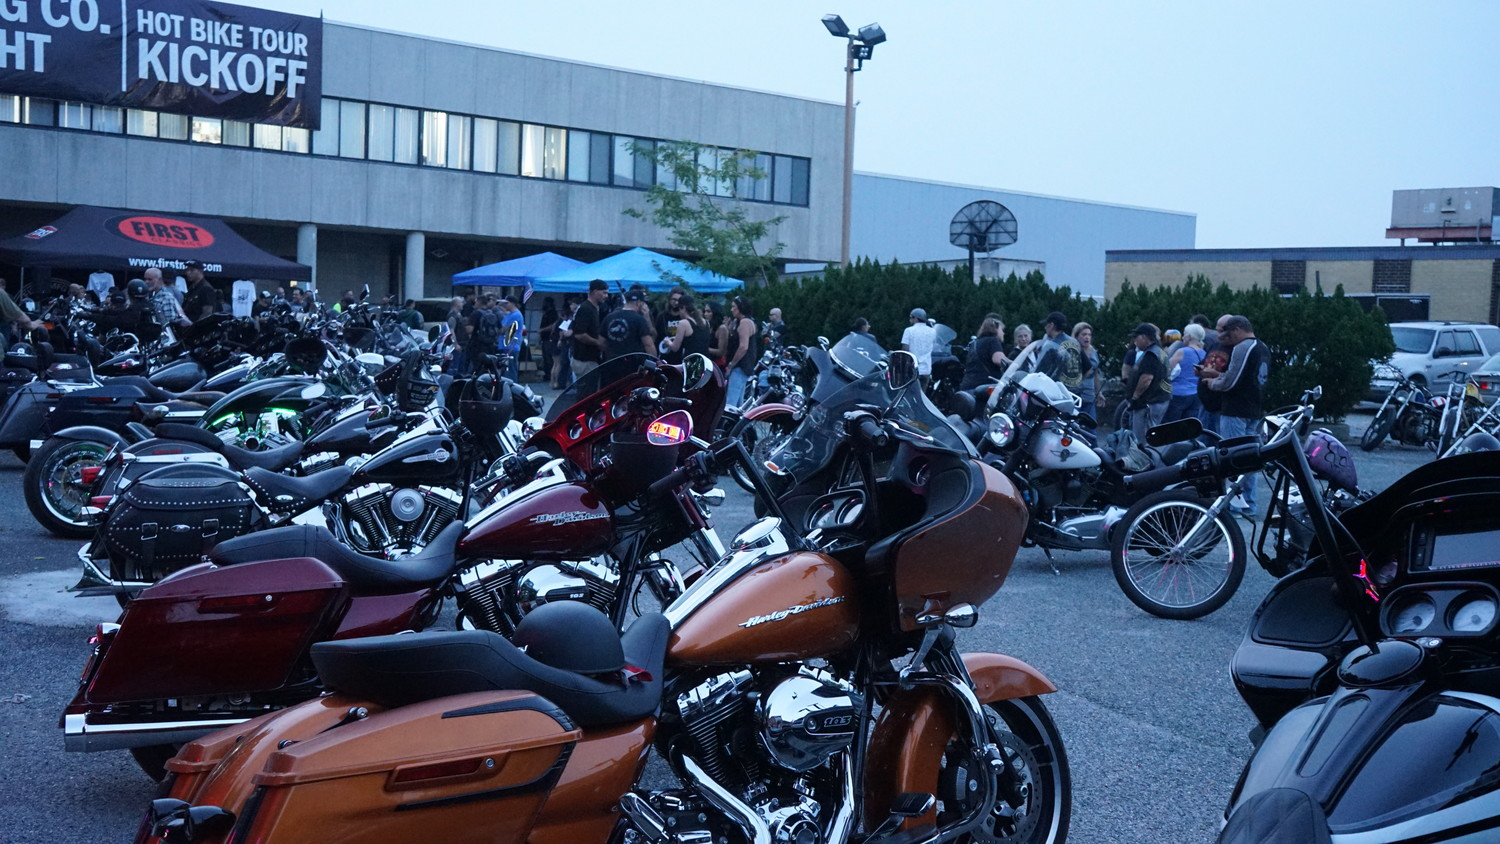 Hundreds of motorcyclists descended on First Manufacturing's Oceanside leather distribution warehouse on Sept. 5 for the kick off to Hot Bike Magazine's 2017 bike tour. The roughly 780-mile ride south would end in Johnson City Tenn. with overnight stops in Pennsylvania and Georgia.